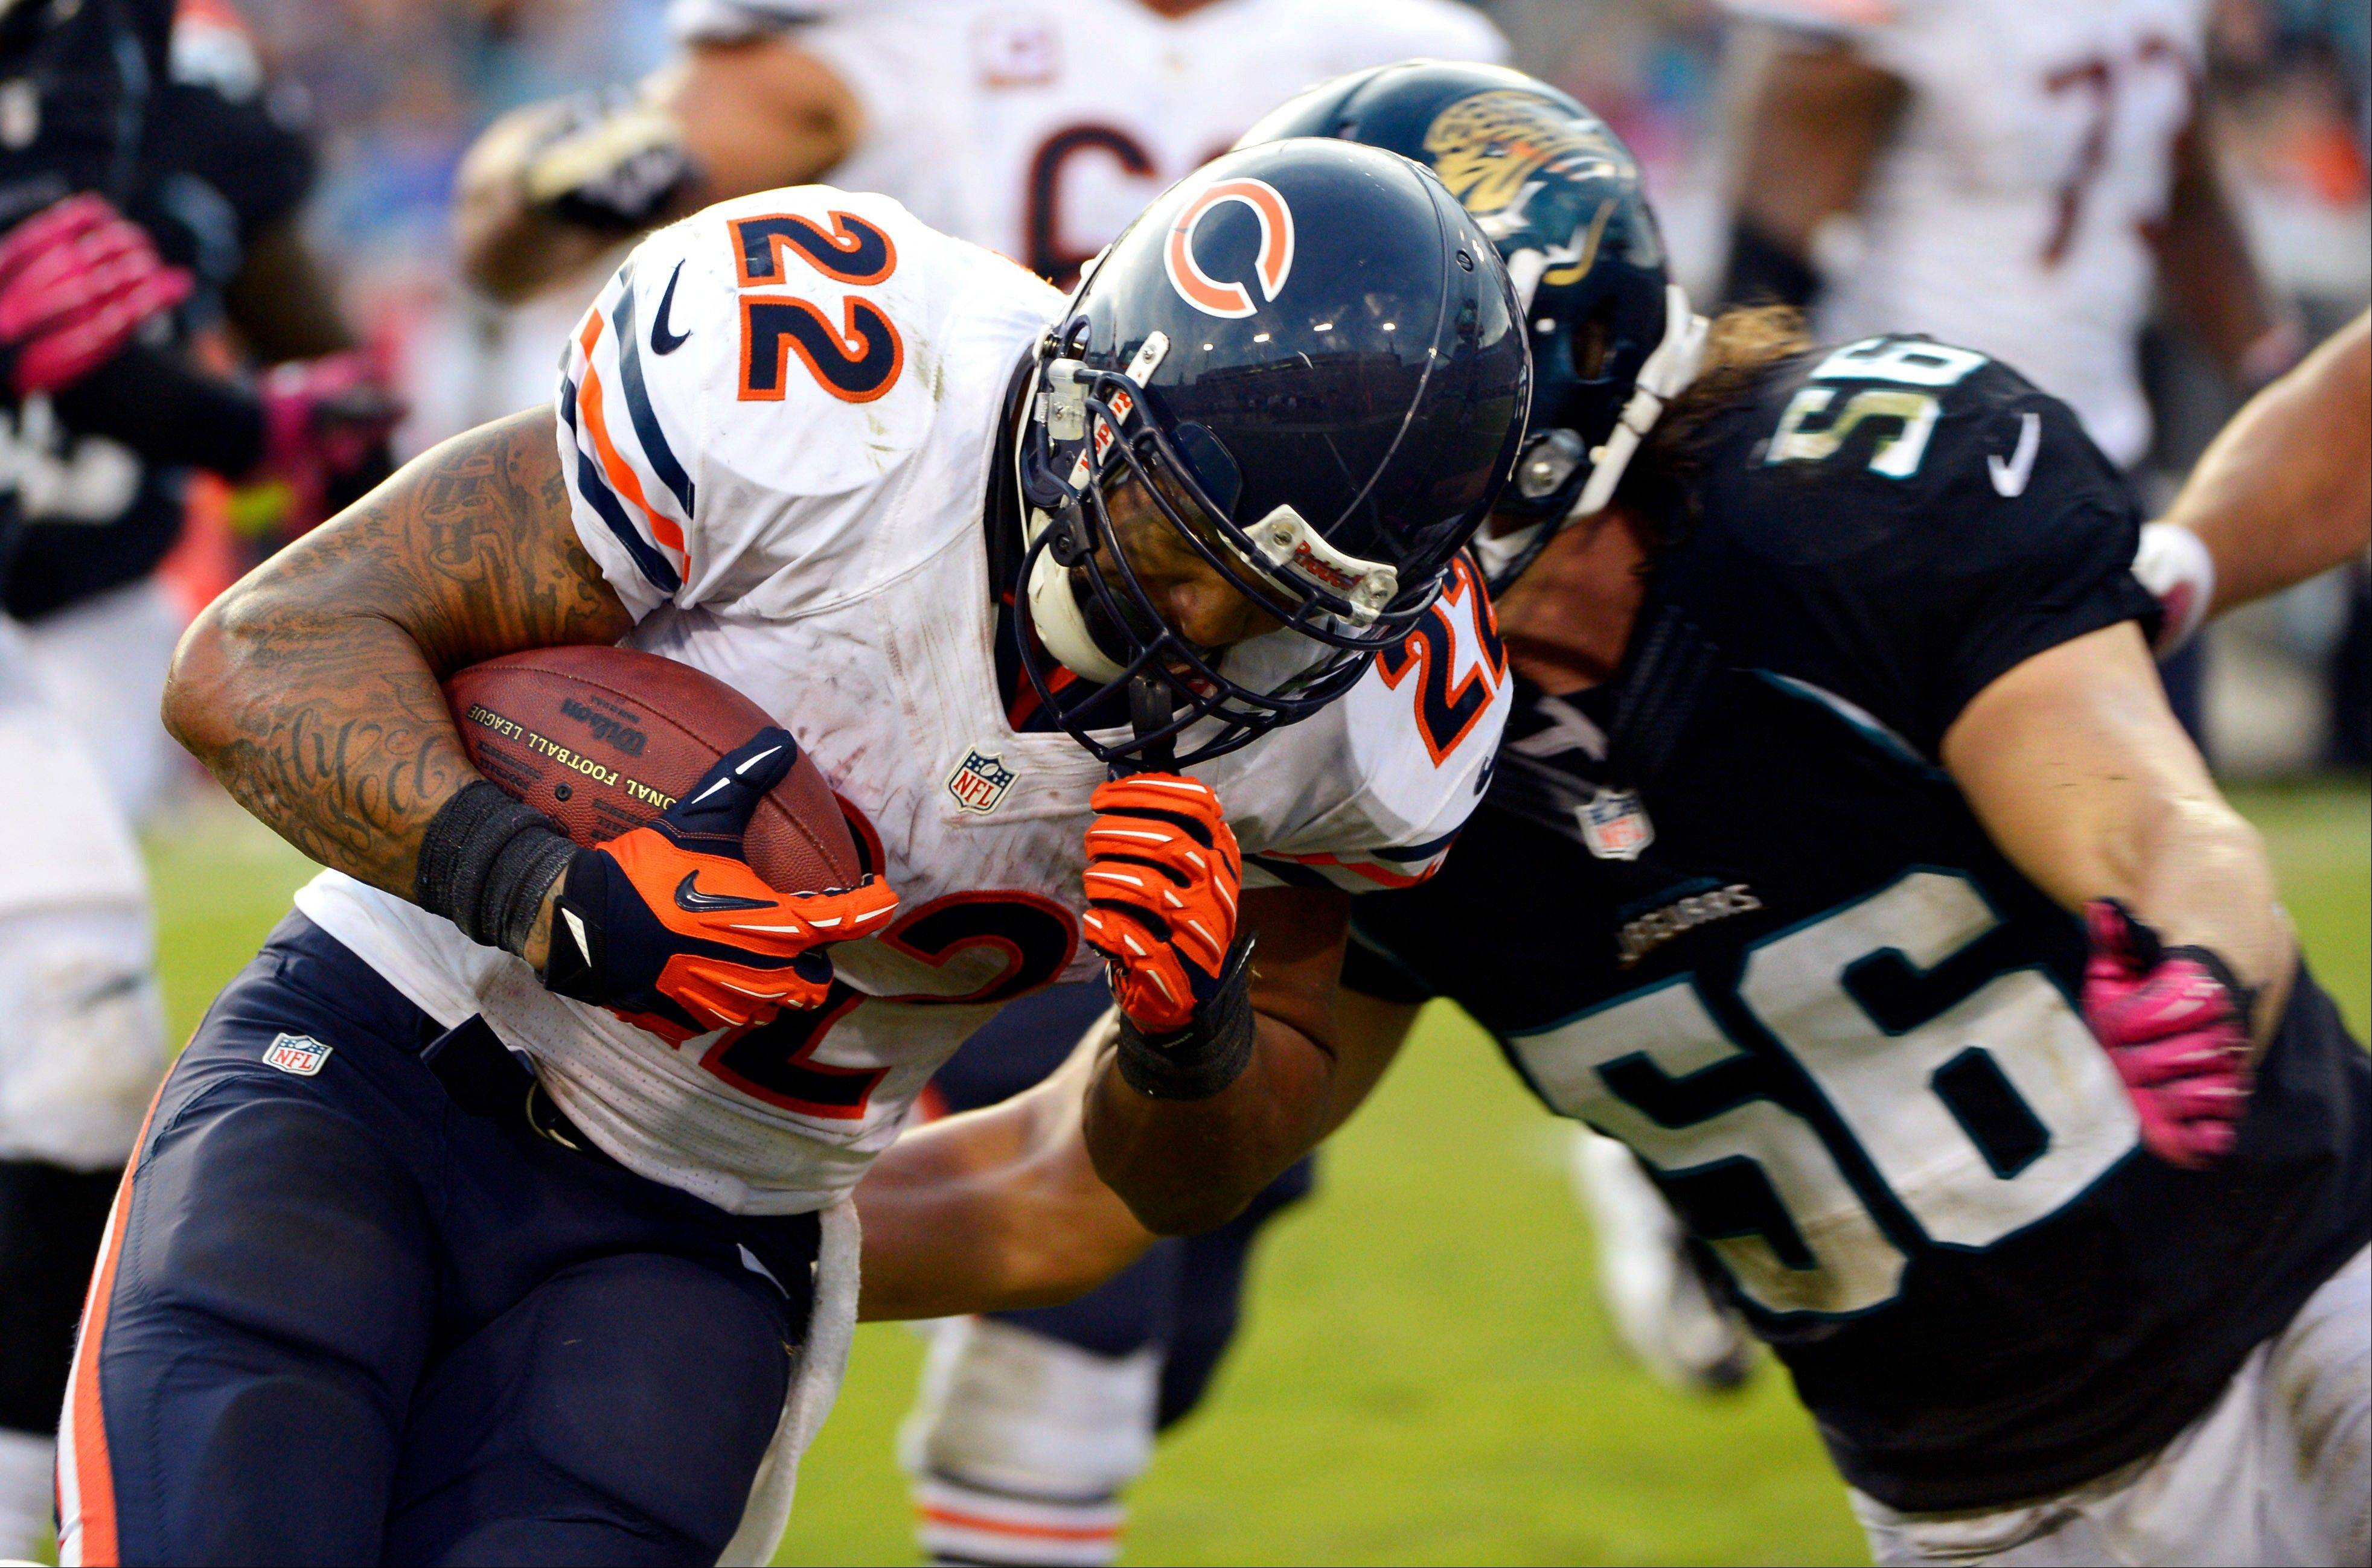 Running back Matt Forte rushed for 107 yards on 22 carries in Sunday�s victory over the Jaguars. The Bears finished with 214 yards on the ground.